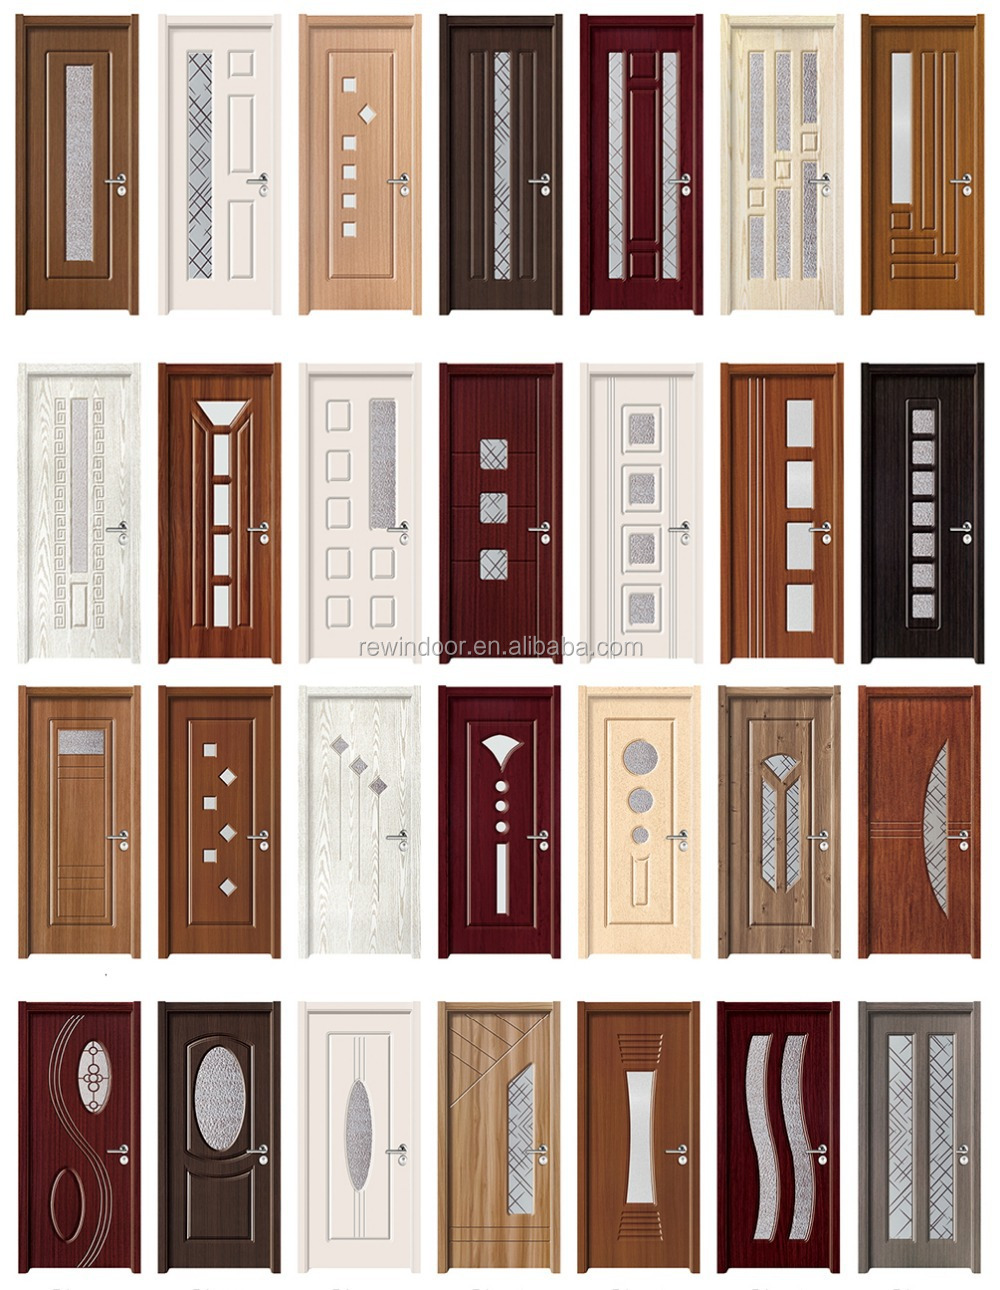 Bathroom pvc doors prices fiber bathroom door teak wood for New main door